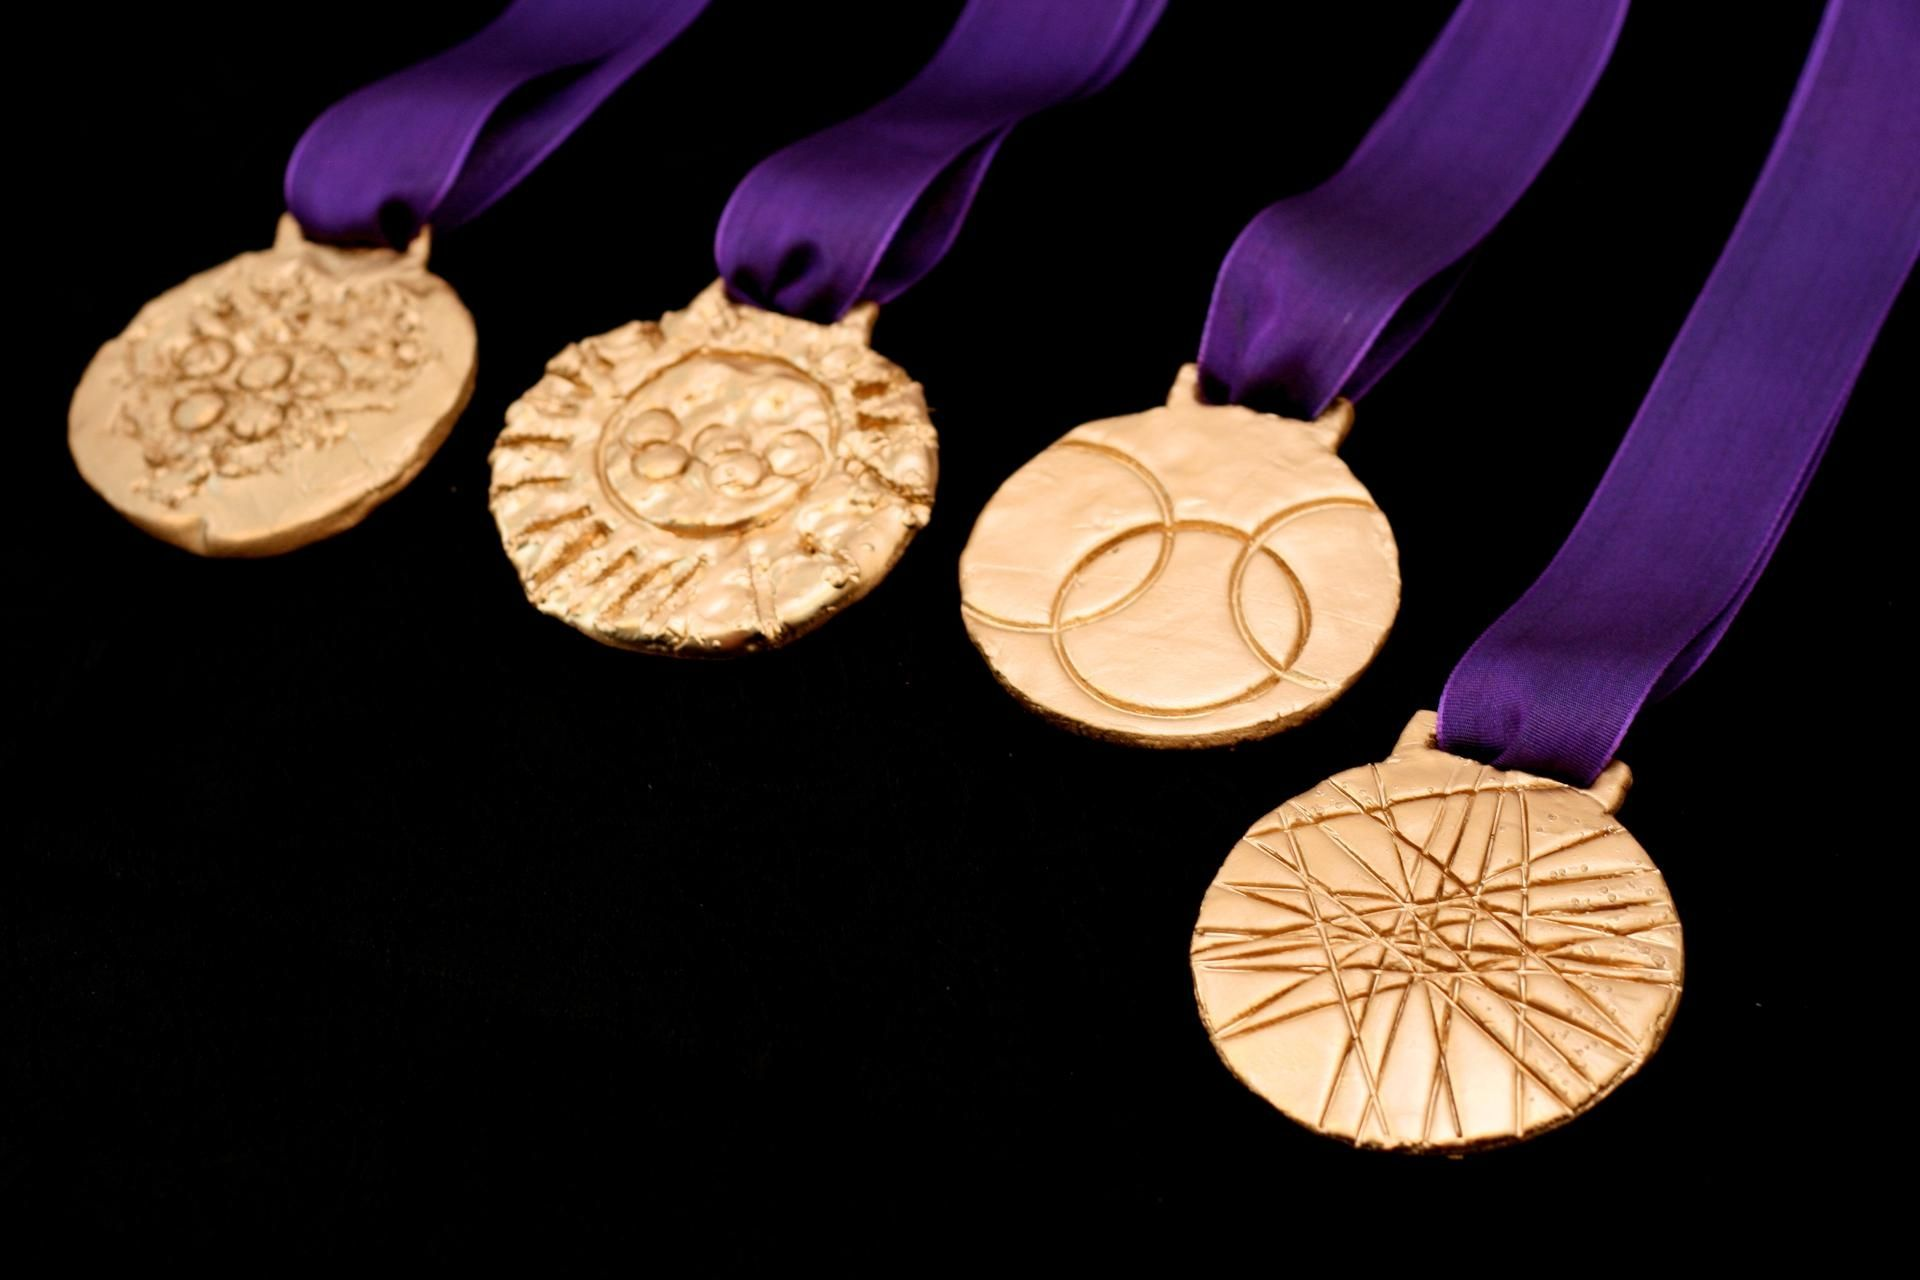 medal dream meaning, dream about medal, medal dream interpretation, seeing in a dream medal